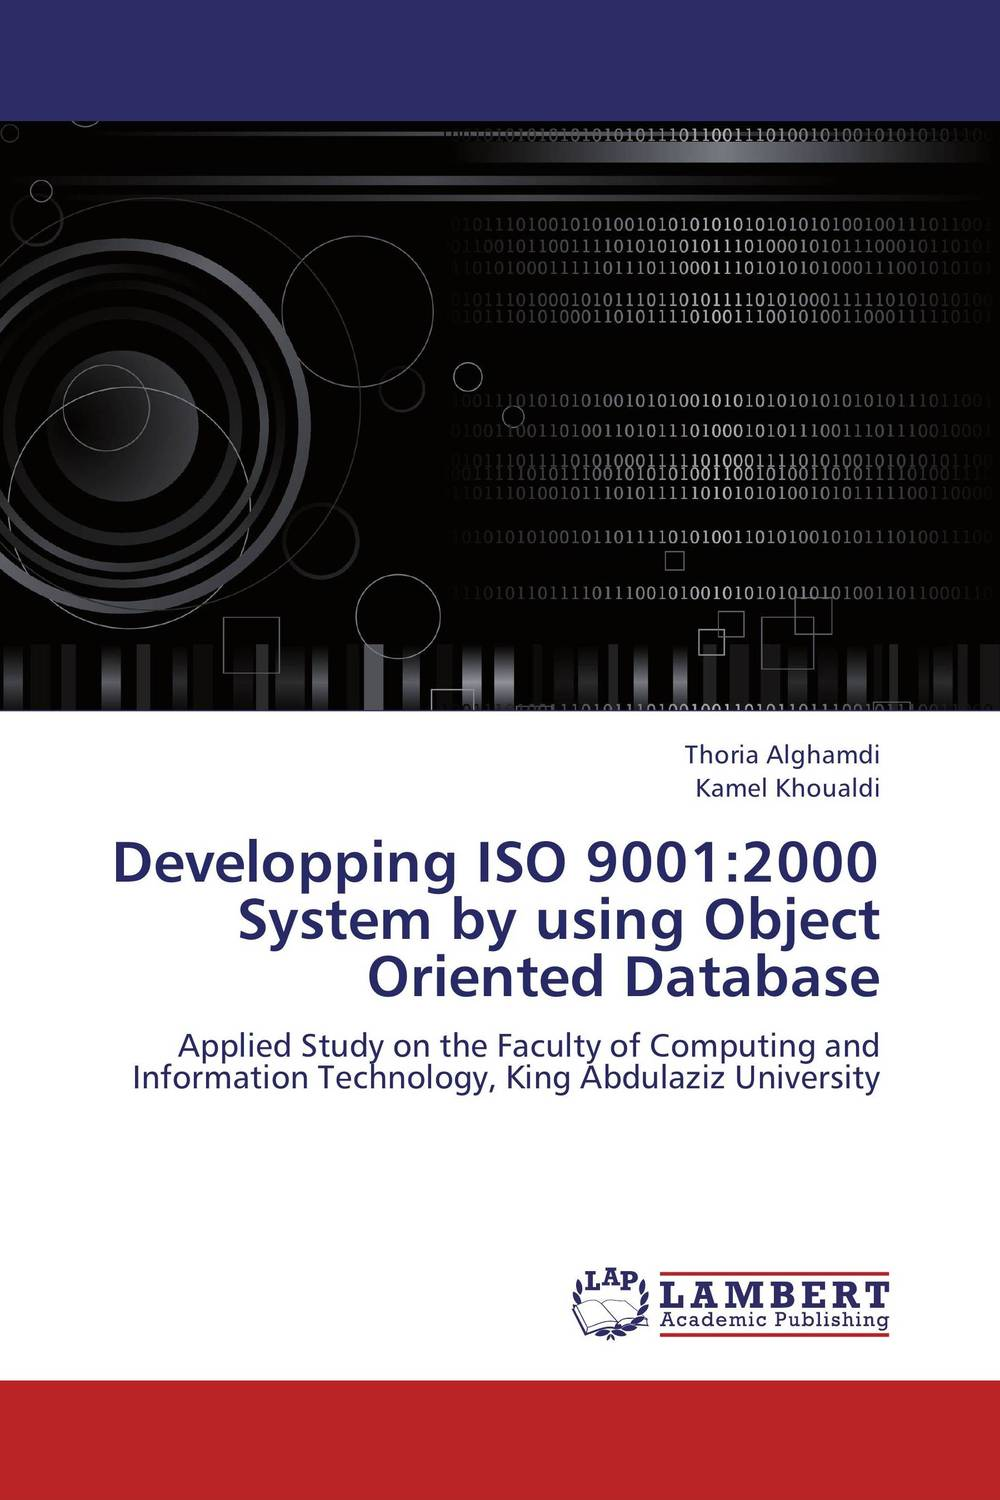 Developping ISO 9001:2000 System by using Object Oriented Database heterogeneous database using xml